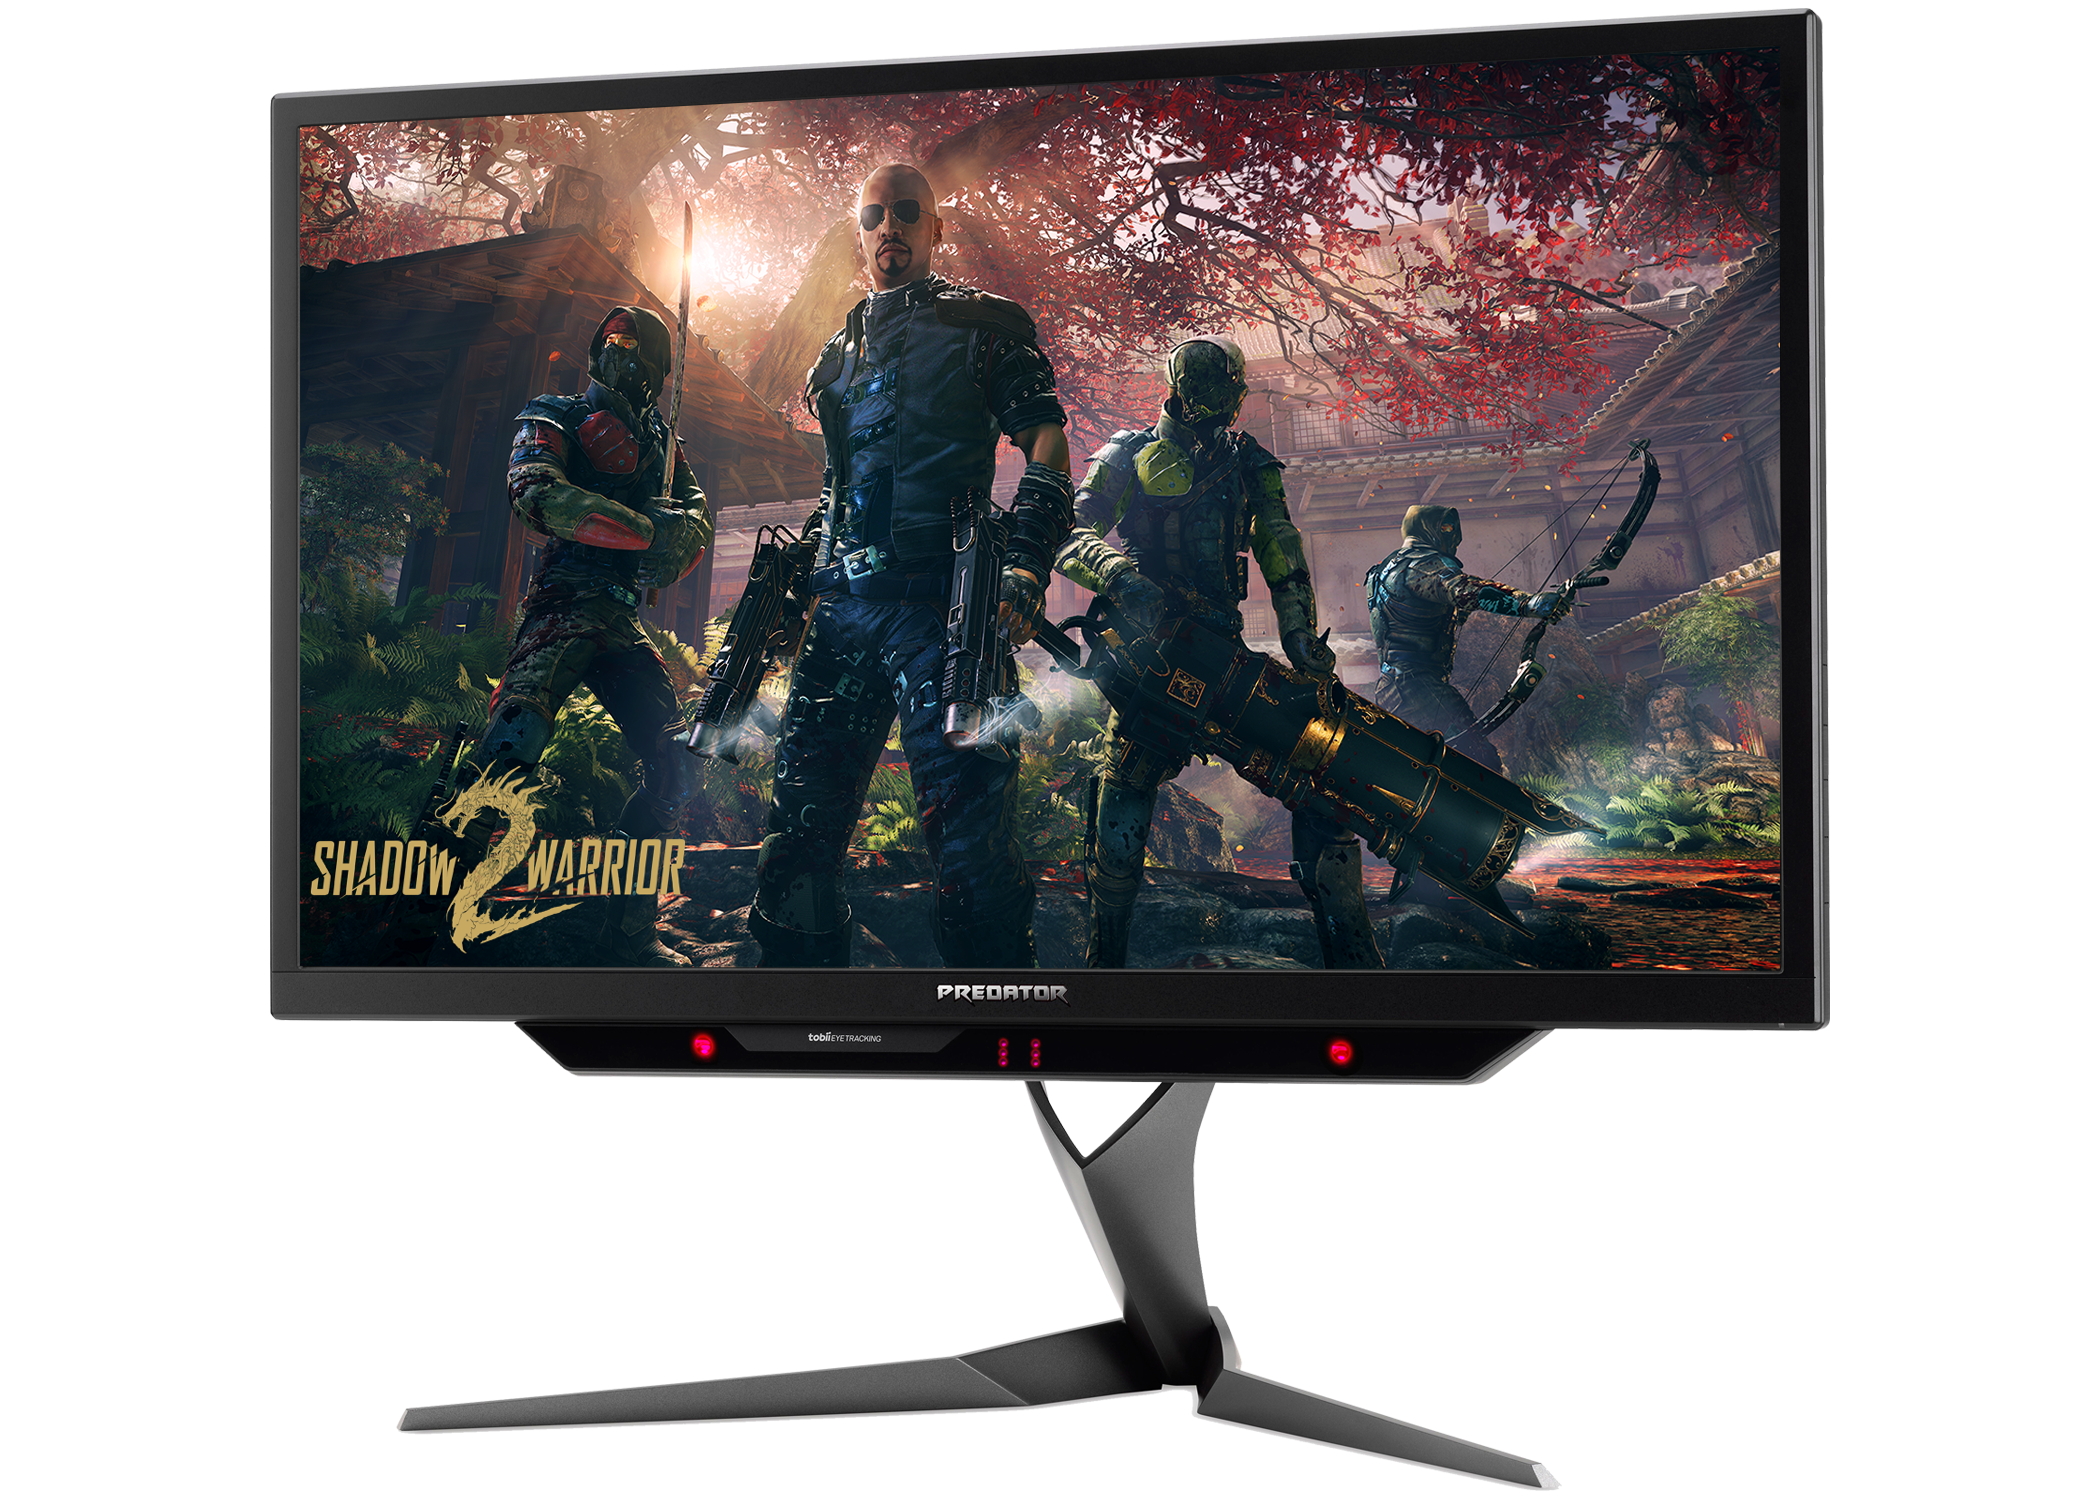 NVIDIA G-Sync HDR Ultrawide 3440x1440 200Hz Monitors Announced By